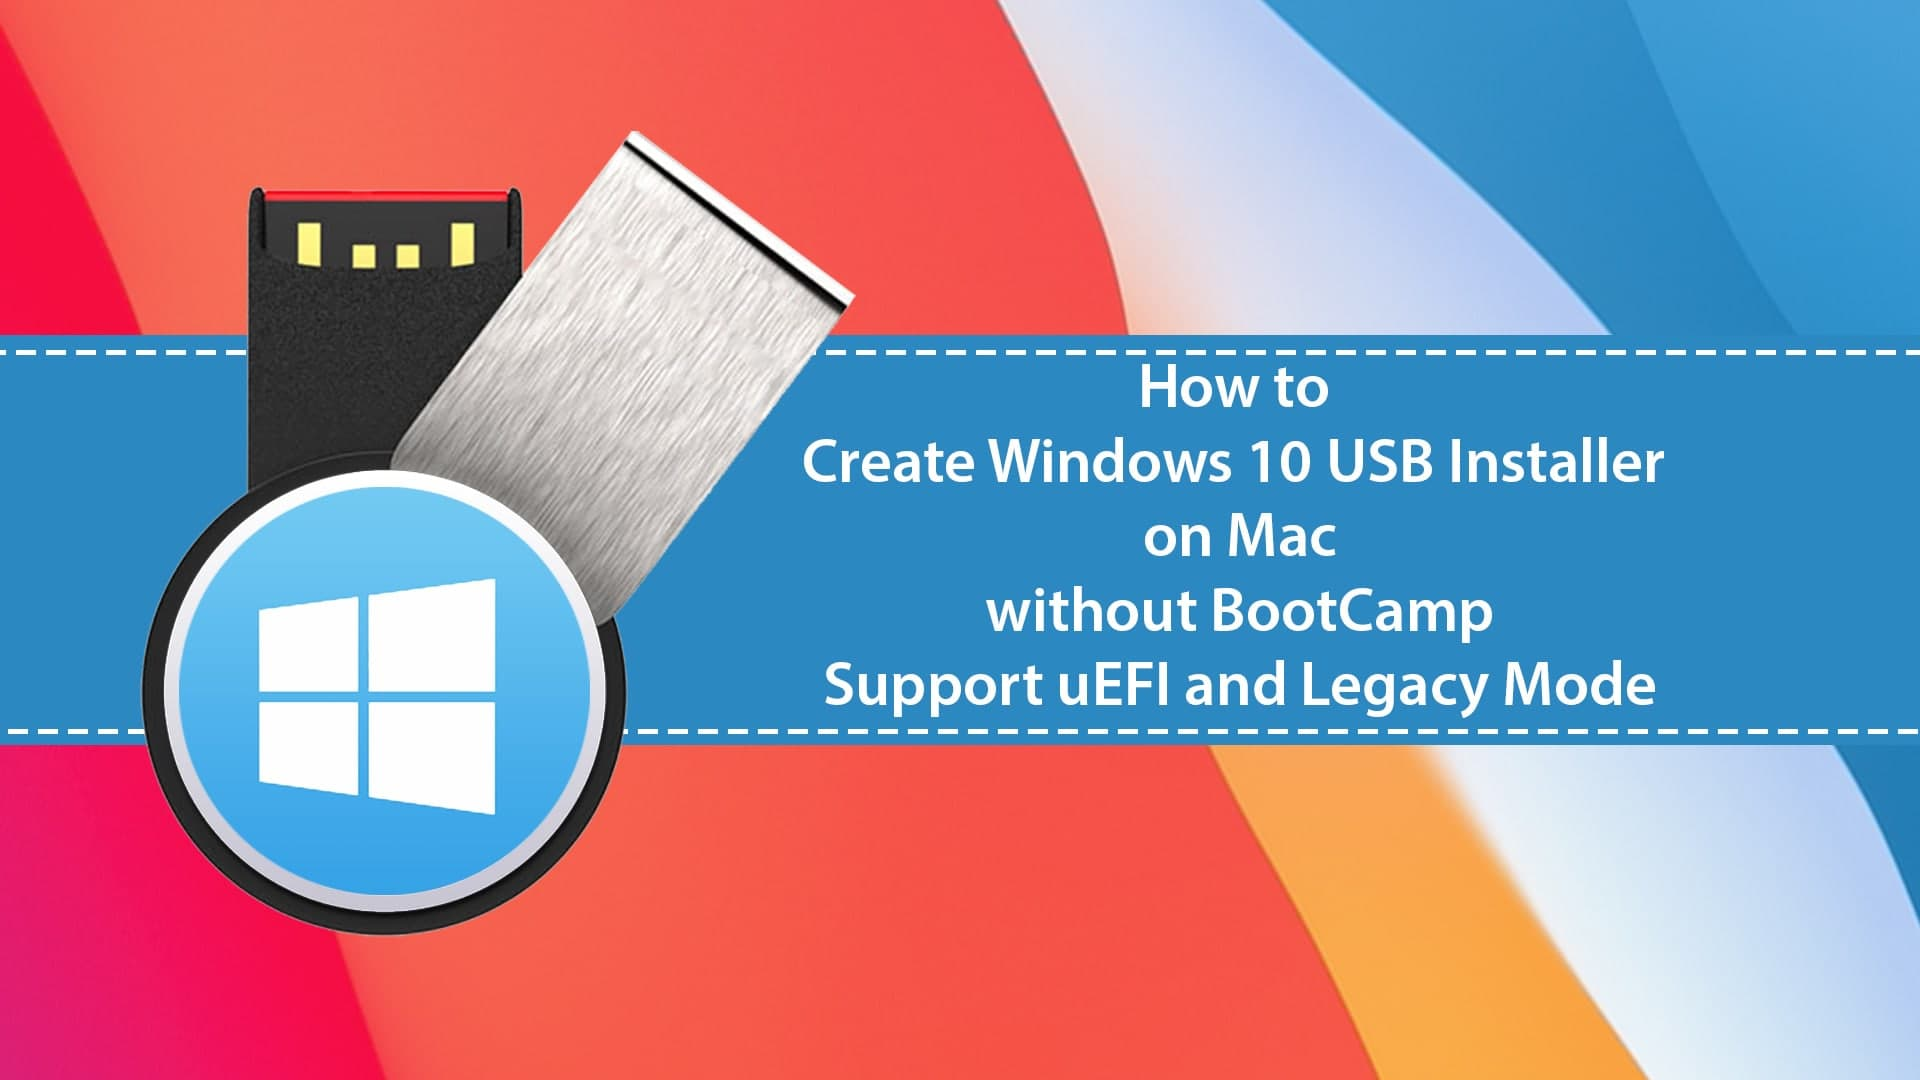 How to Create Windows 10 Bootable USB on Mac without BootCamp (Support uEFI, Legacy)